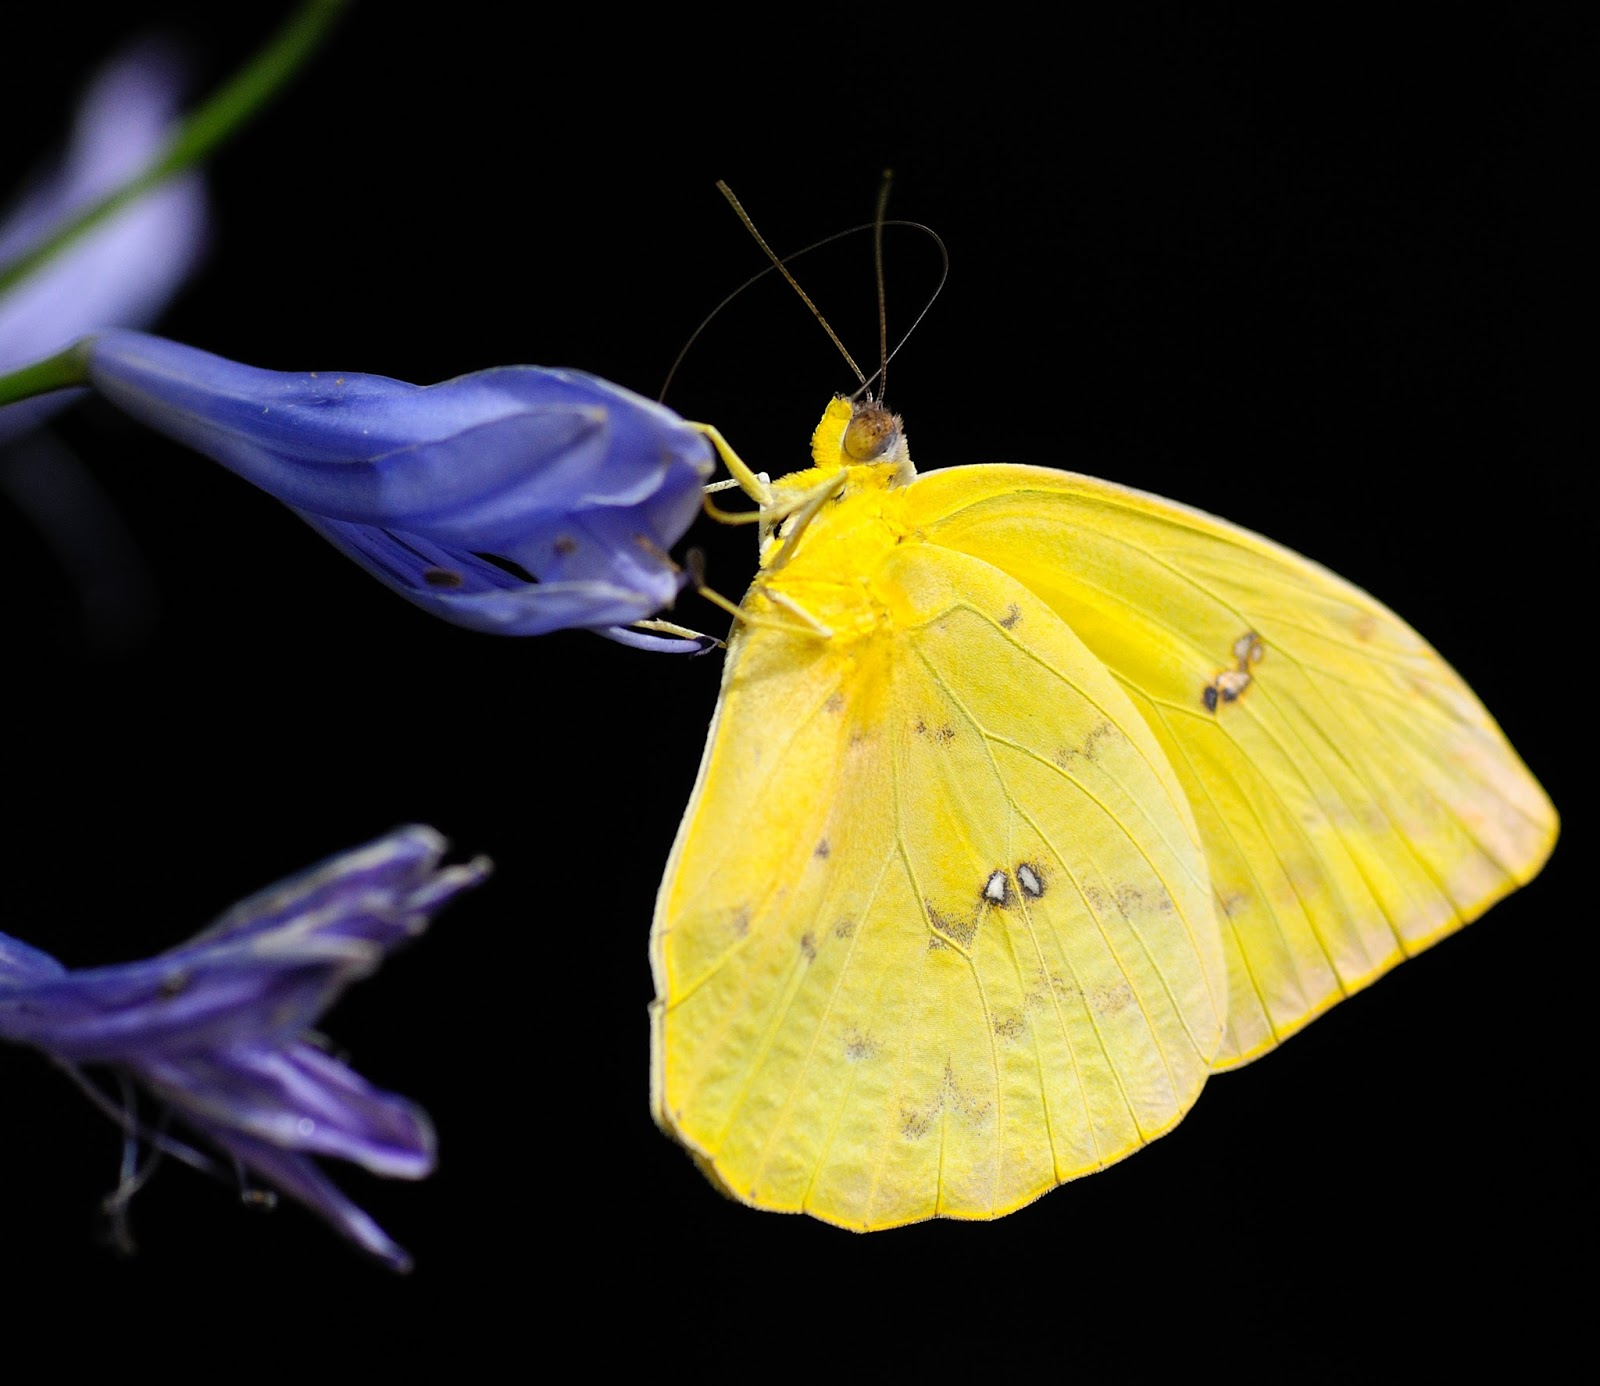 Image of a yellow butterfly.